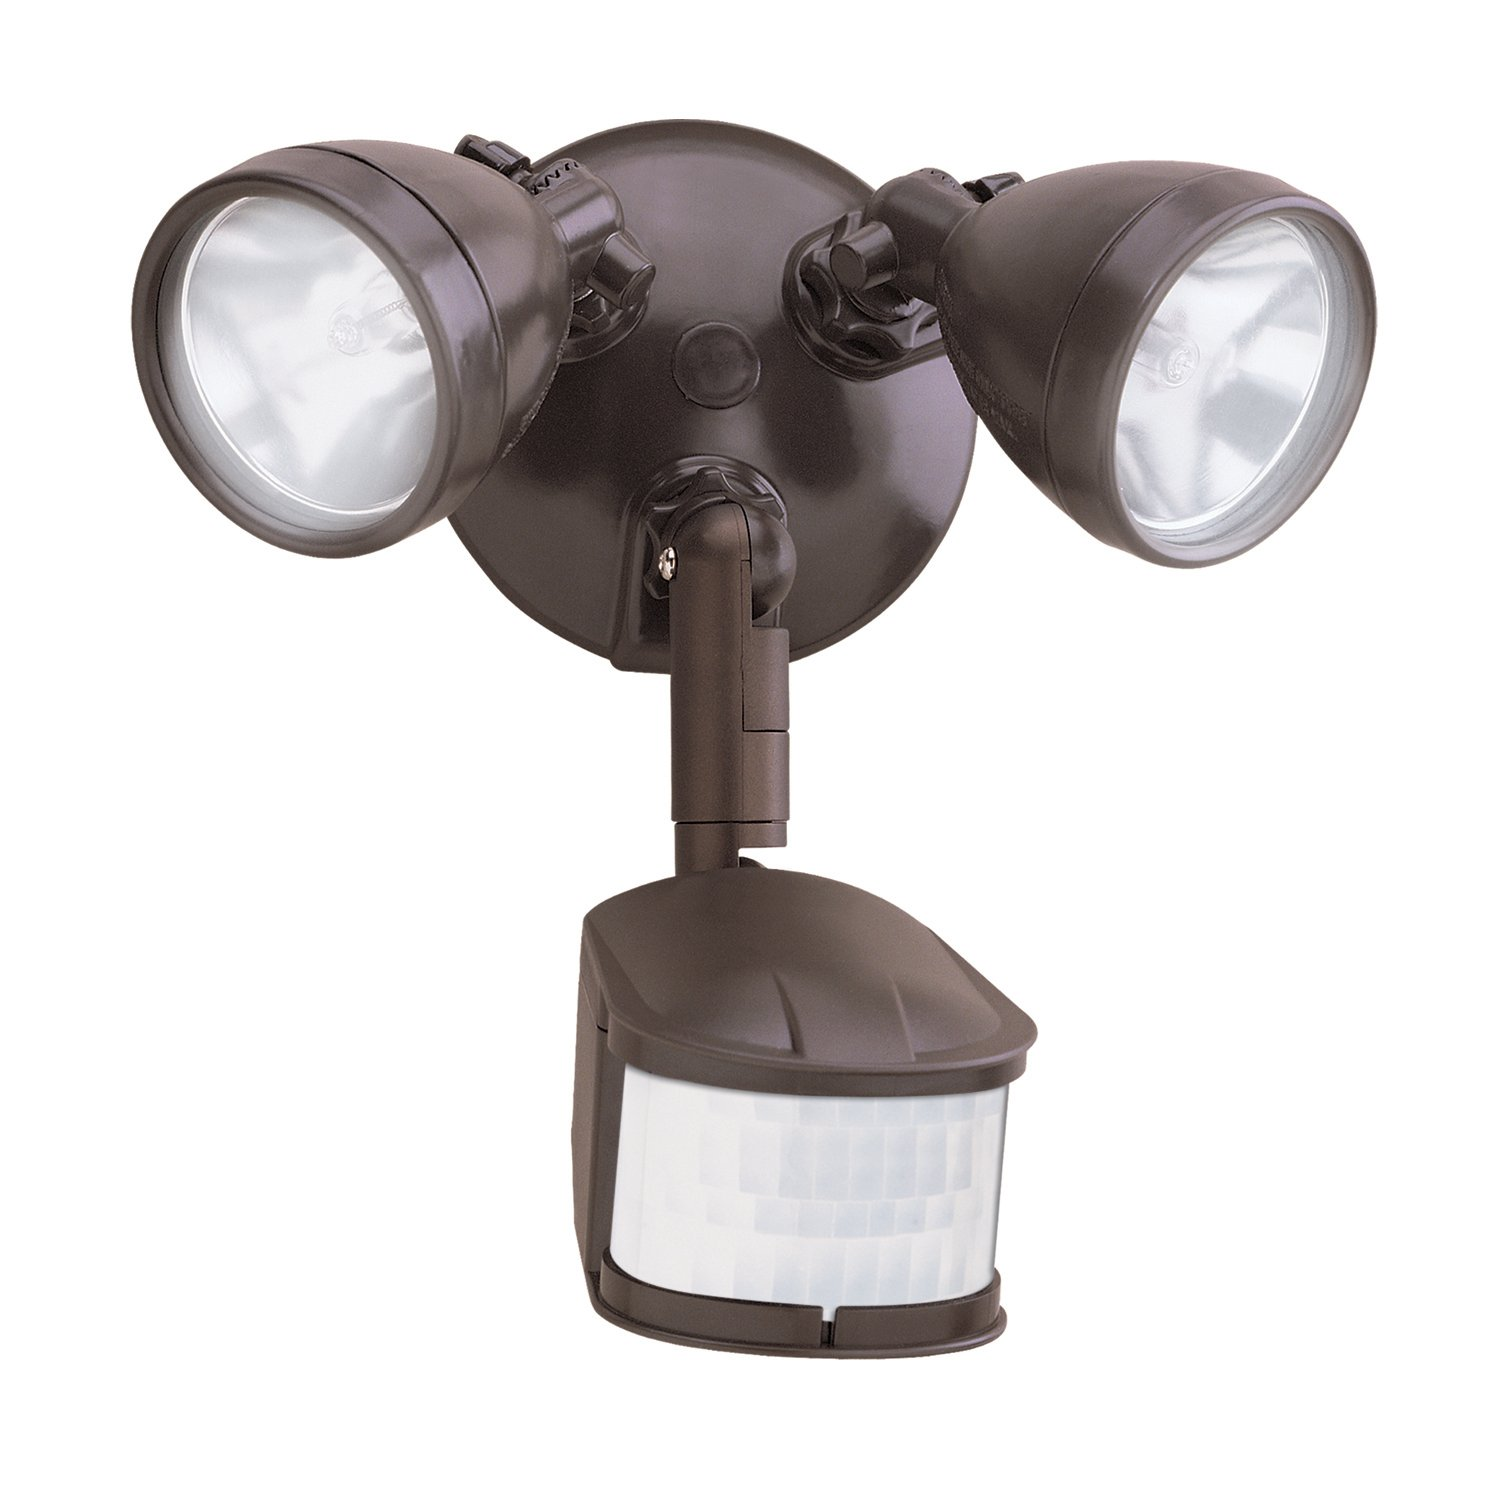 All Pro Outdoor Security MS248 240-Degree Motion-Activated Security Floodlight 200-Watt Quartz Halogen Bronze - Flood Lighting - Amazon.com  sc 1 st  Amazon.com & All Pro Outdoor Security MS248 240-Degree Motion-Activated ... azcodes.com